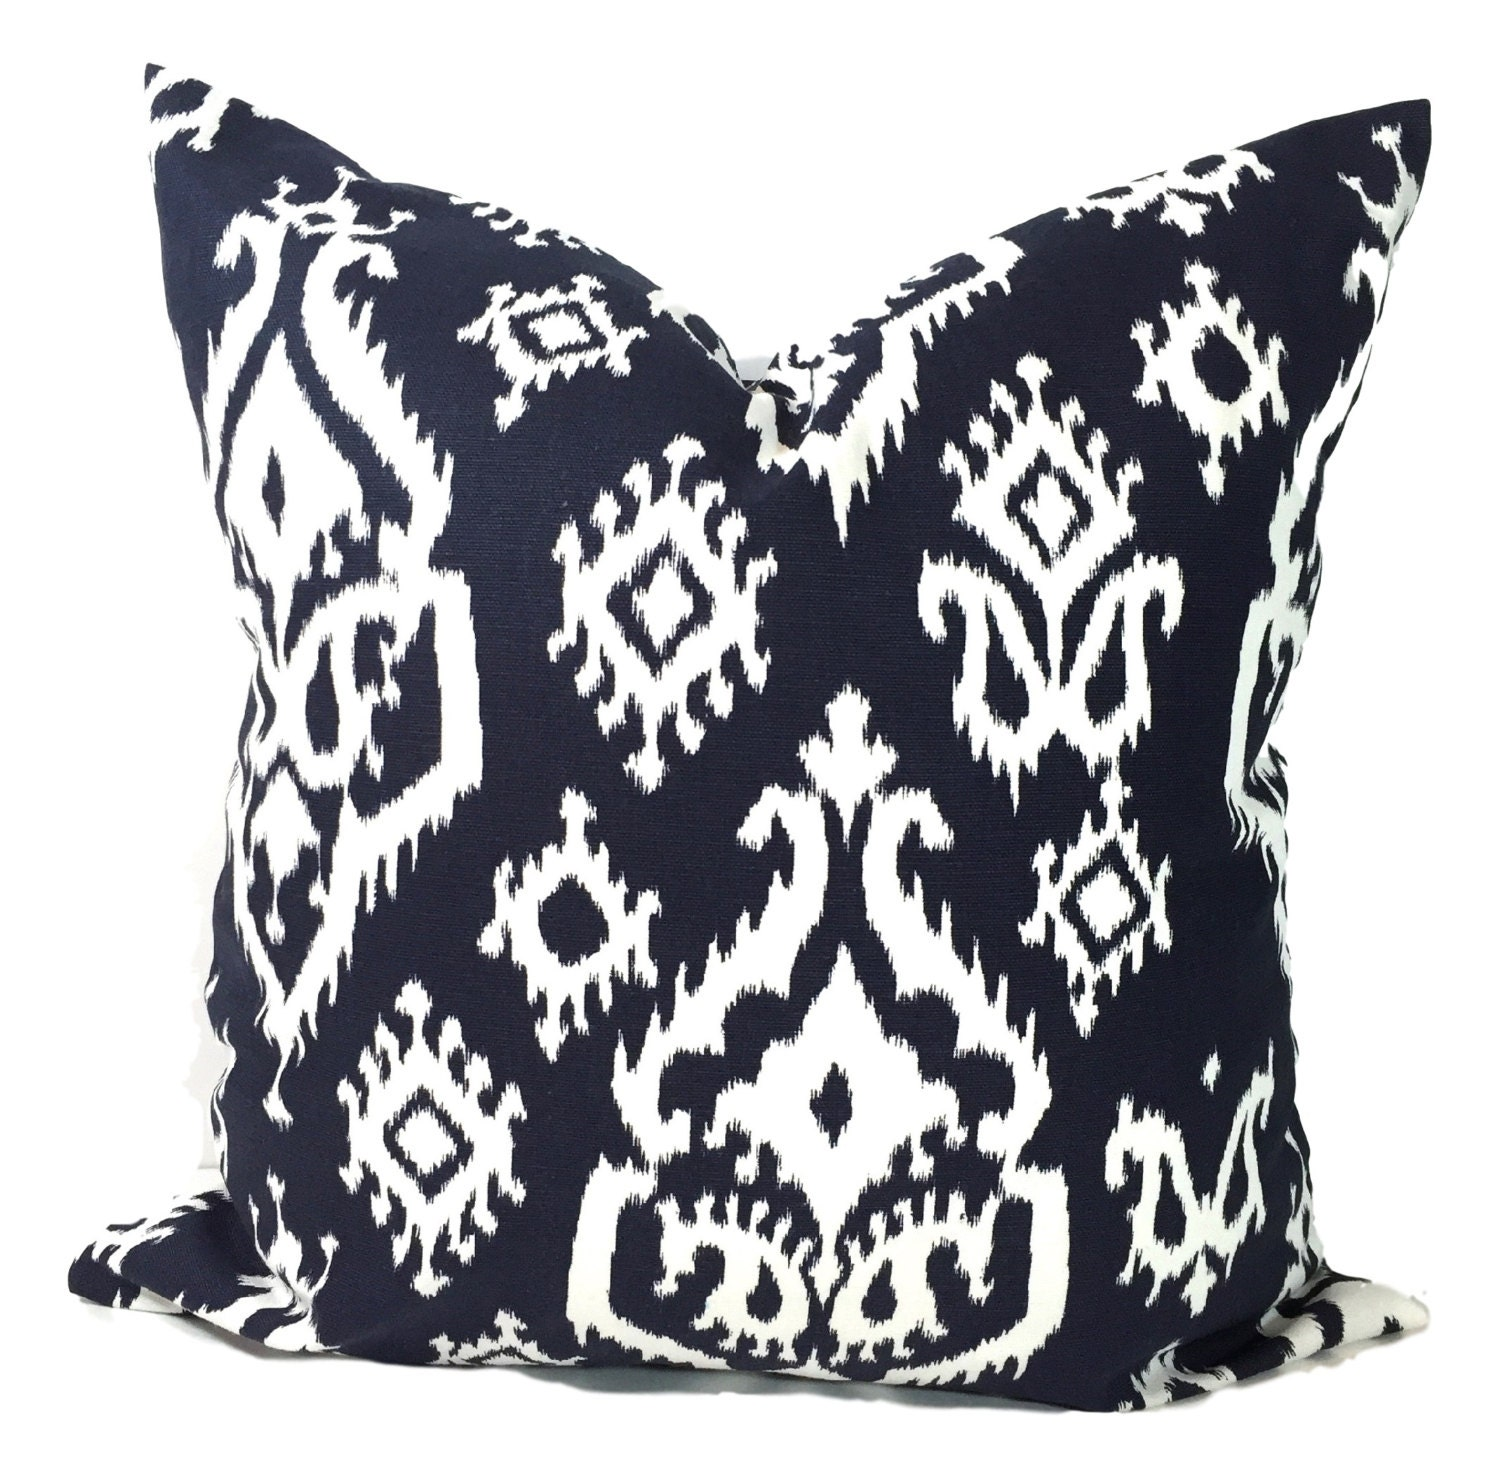 Decorative Pillows Navy : Navy Blue Pillows.Pillow Cover Decorative Pillow Throw